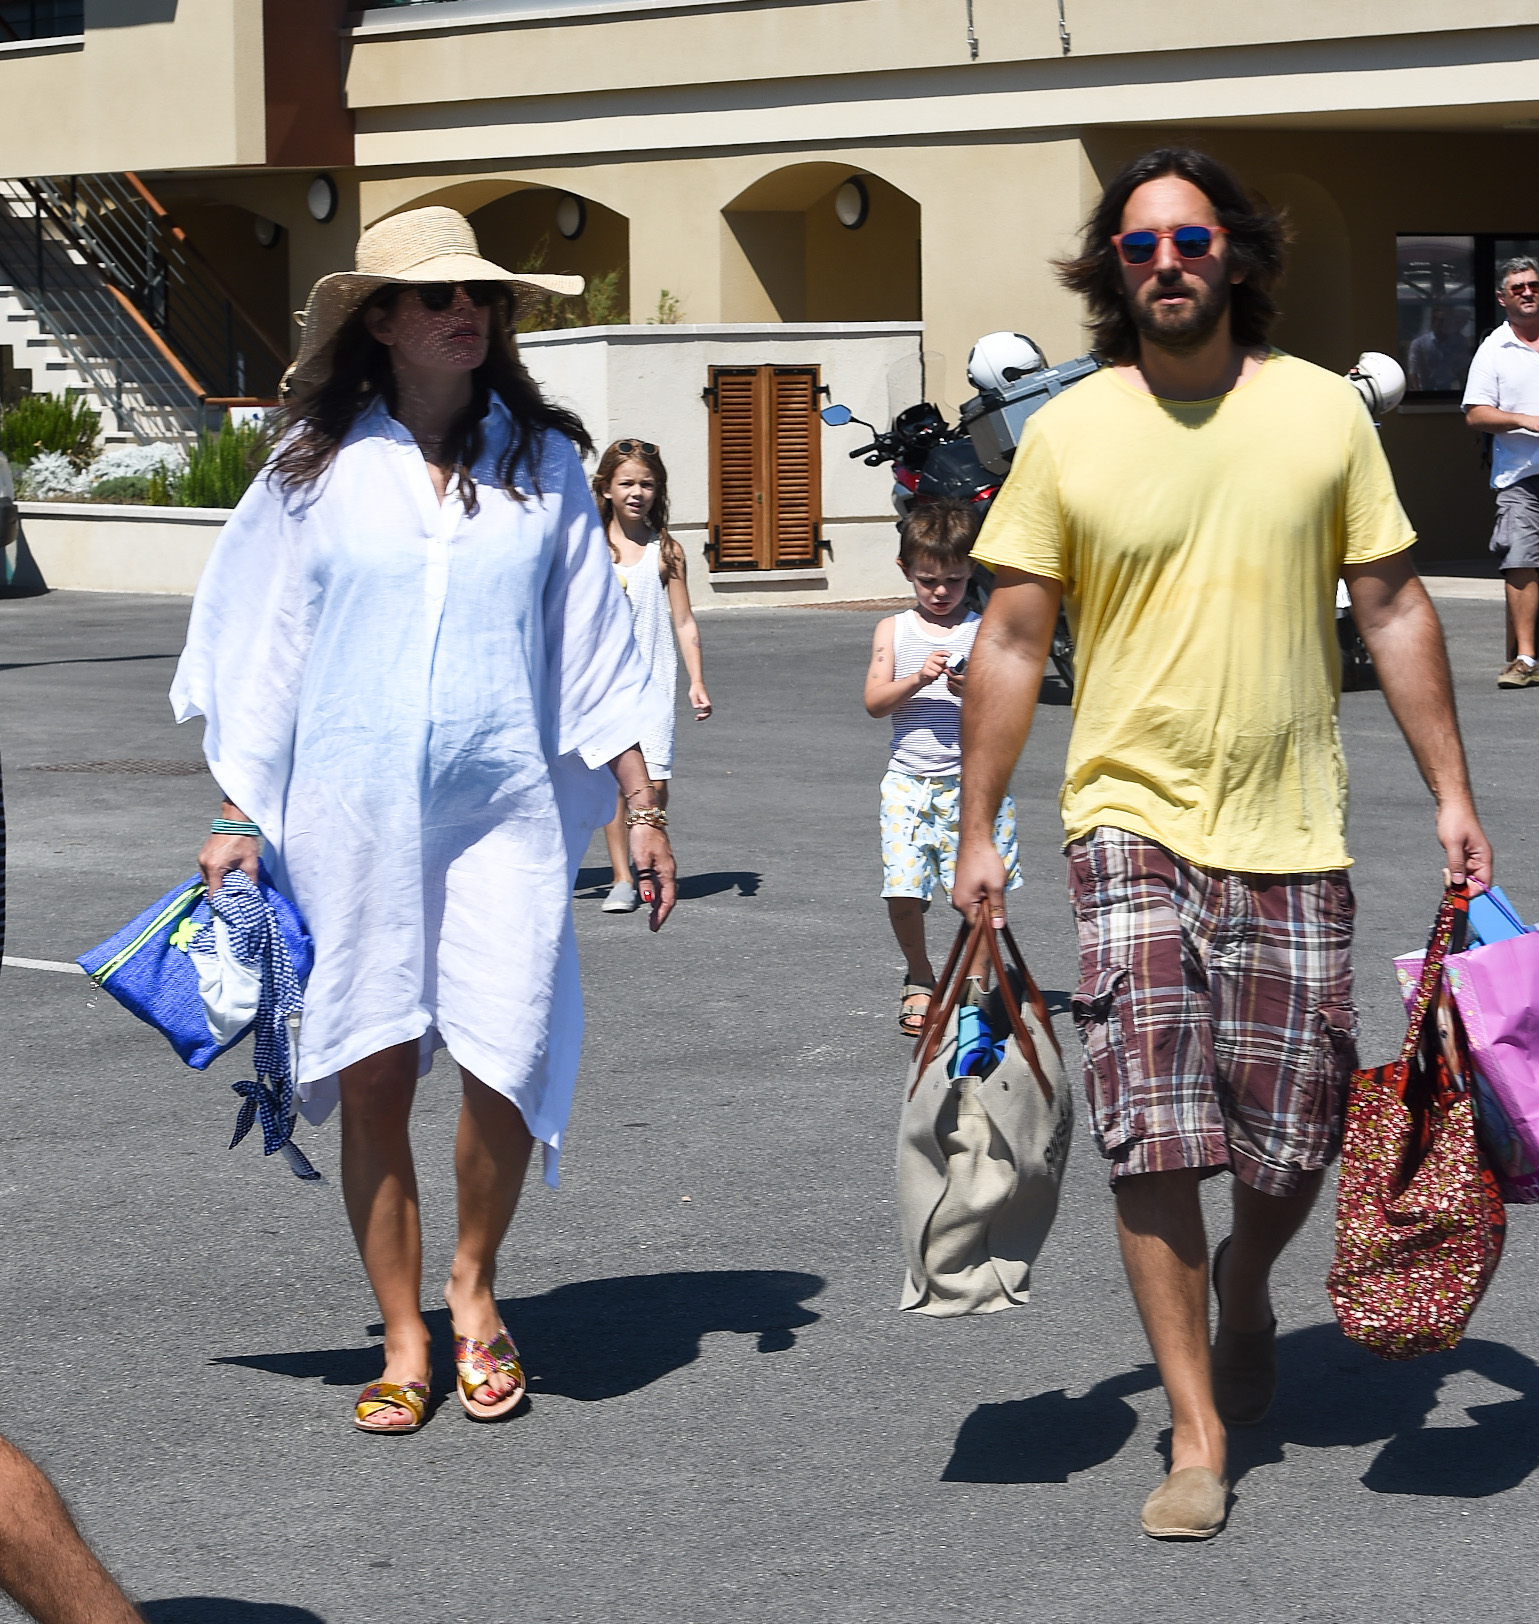 Pregnant Charlotte Casiraghi and Dimitri Rassam are seen boarding a yacht in St Tropez harbour, France  Pictured: Charlotte Casiraghi,Dimitri Rassam Ref: SPL5011830 230718 NON-EXCLUSIVE Picture by: Neil Warner / SplashNews.com  Splash News and Pictures Los Angeles: 310-821-2666 New York: 212-619-2666 London: 0207 644 7656 Milan: +39 02 4399 8577 Sydney: +61 02 9240 7700 photodesk@splashnews.com  World Rights